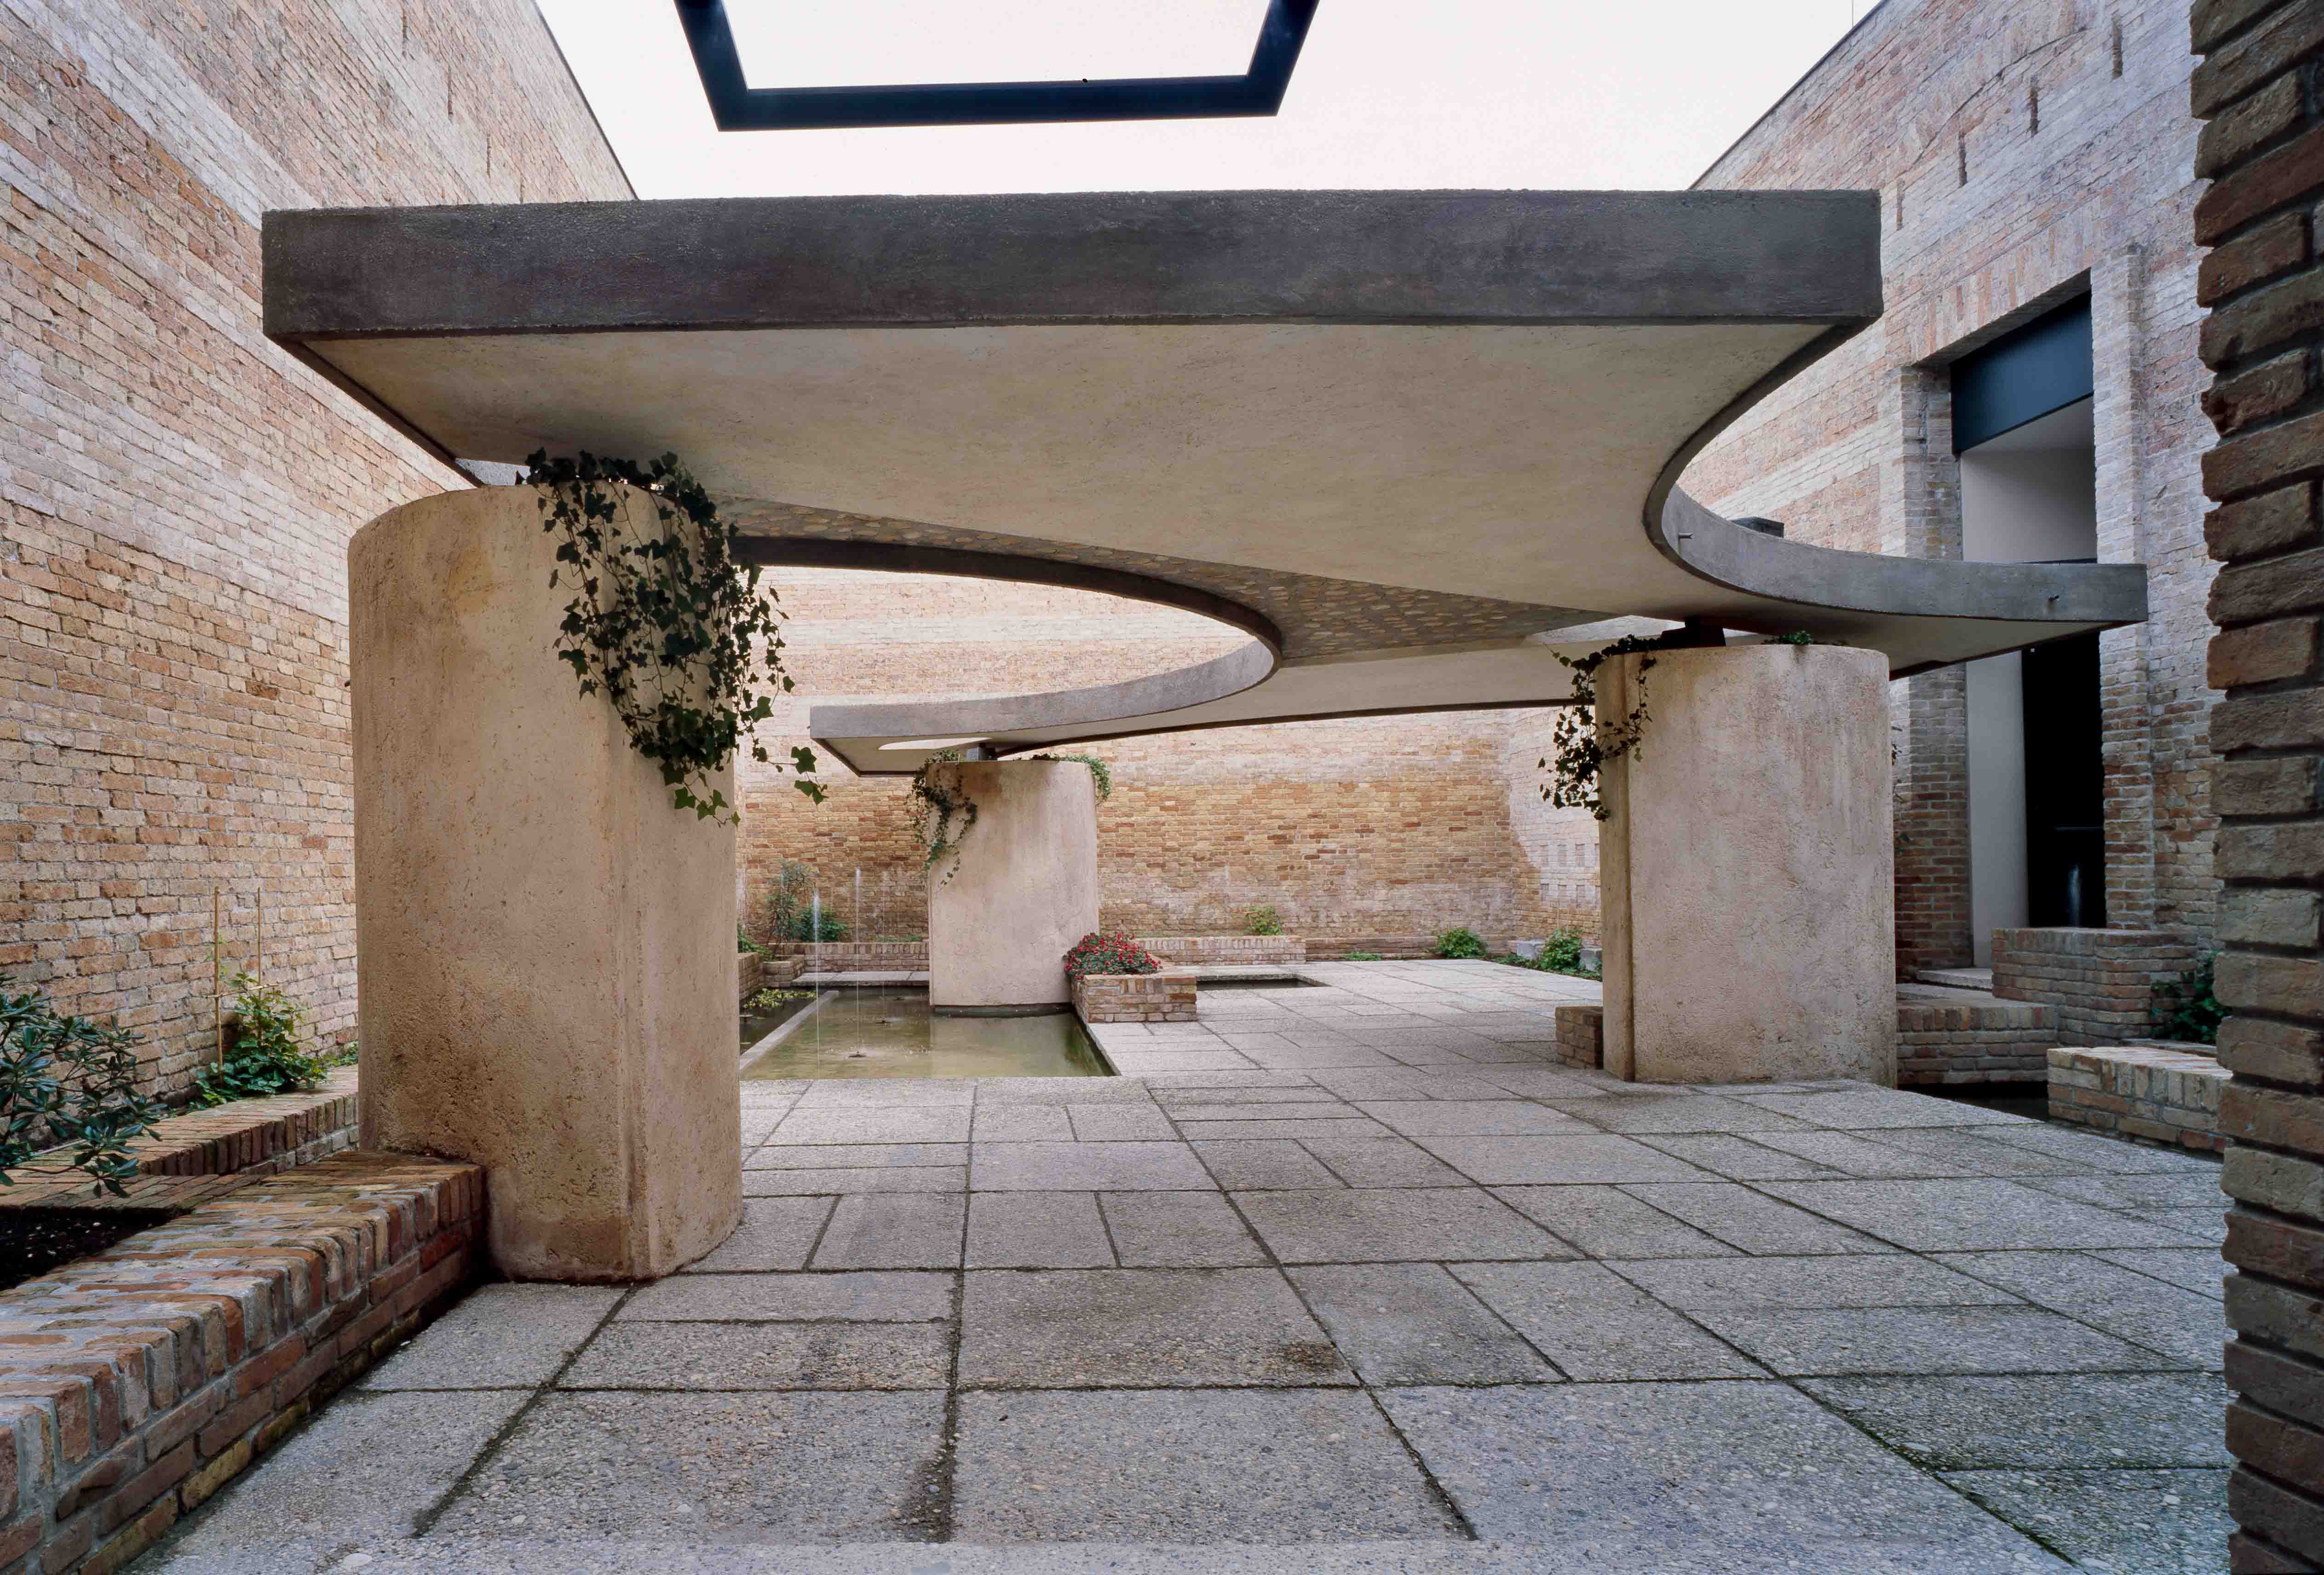 Carlo scarpa talks to robert mccarter architects and - Carlo scarpa architecture and design ...